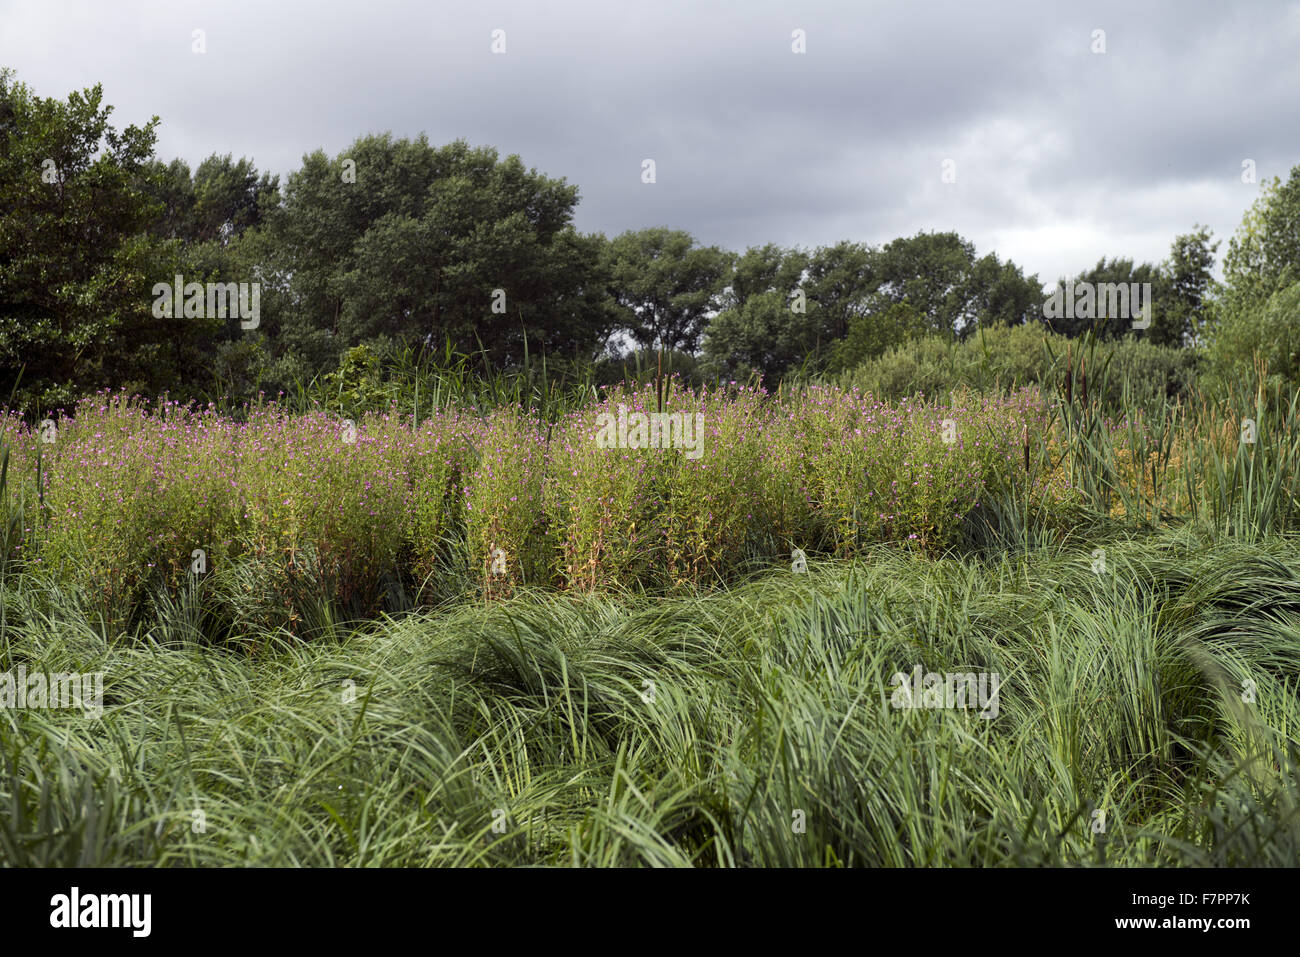 Vegetation growing near a pond in Morden Hall Park, London. Stock Photo